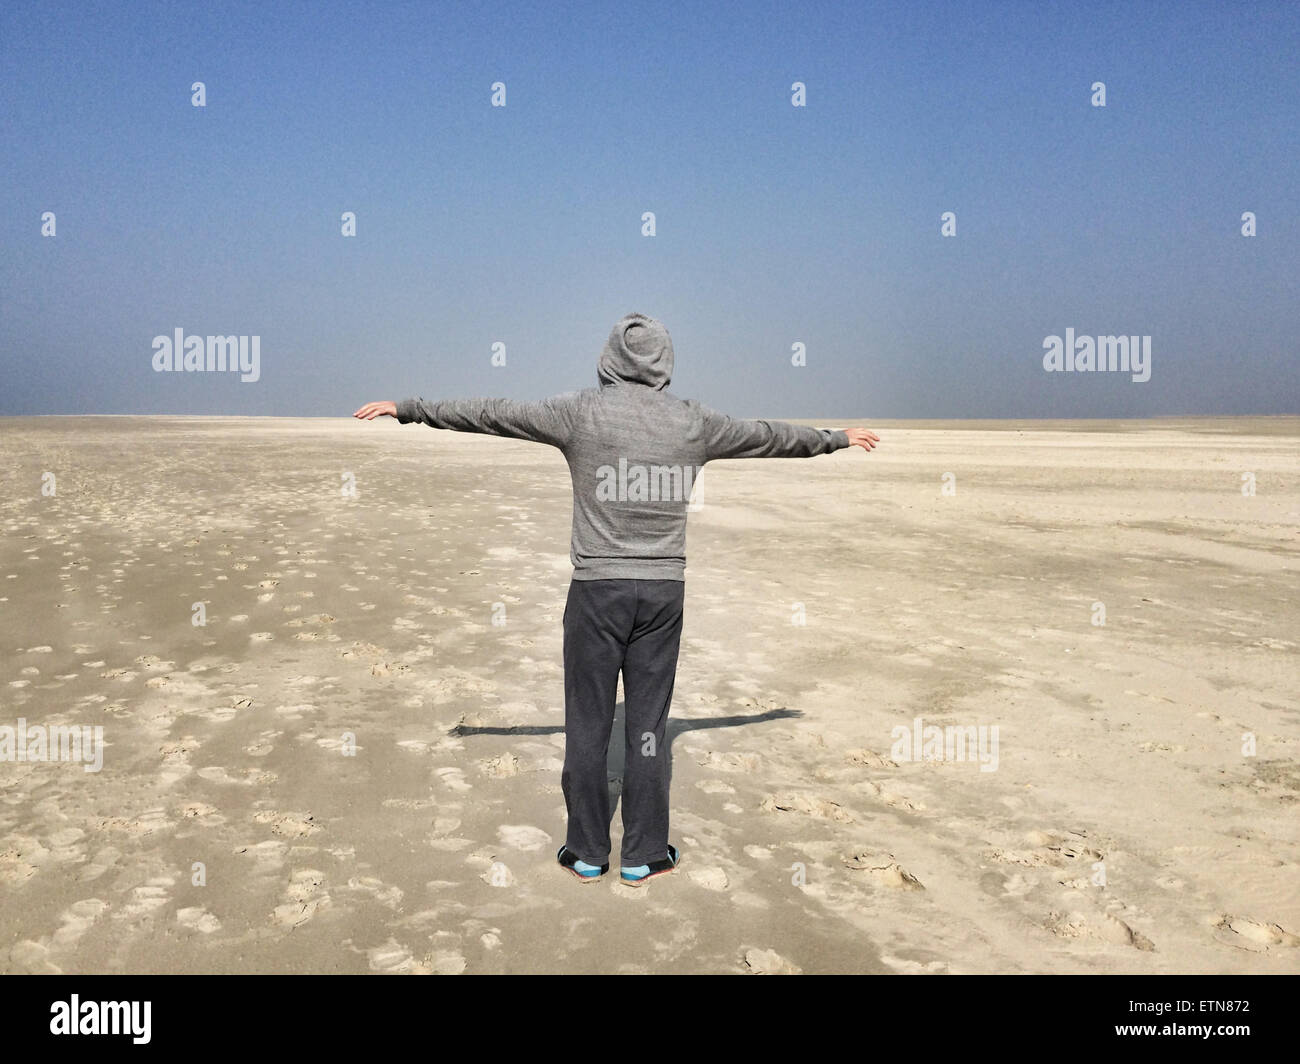 Rear view of a man with outstretched arms on a beach, Denmark - Stock Image